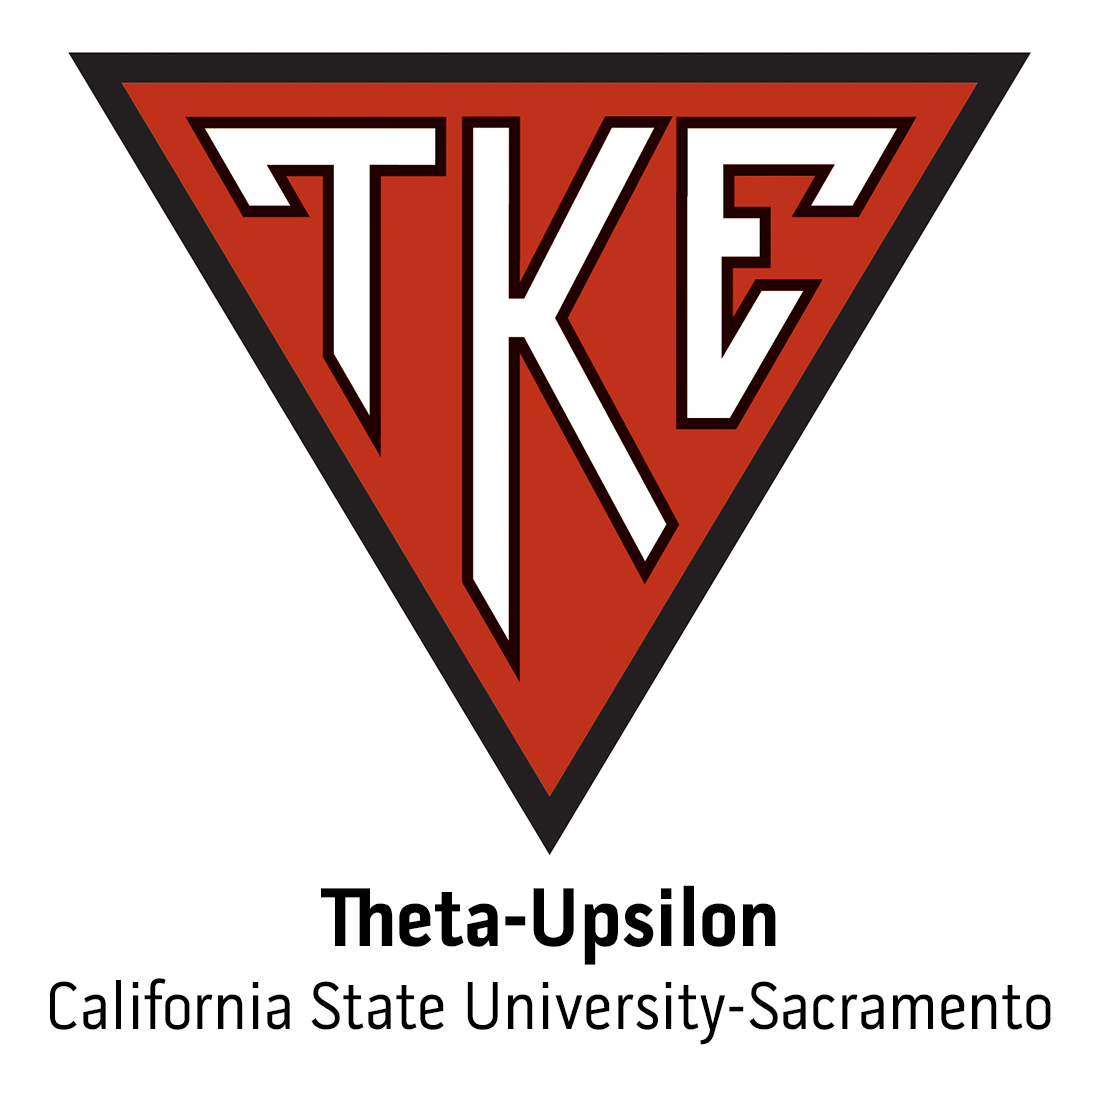 Theta-Upsilon Colony Colony at California State University, Sacramento